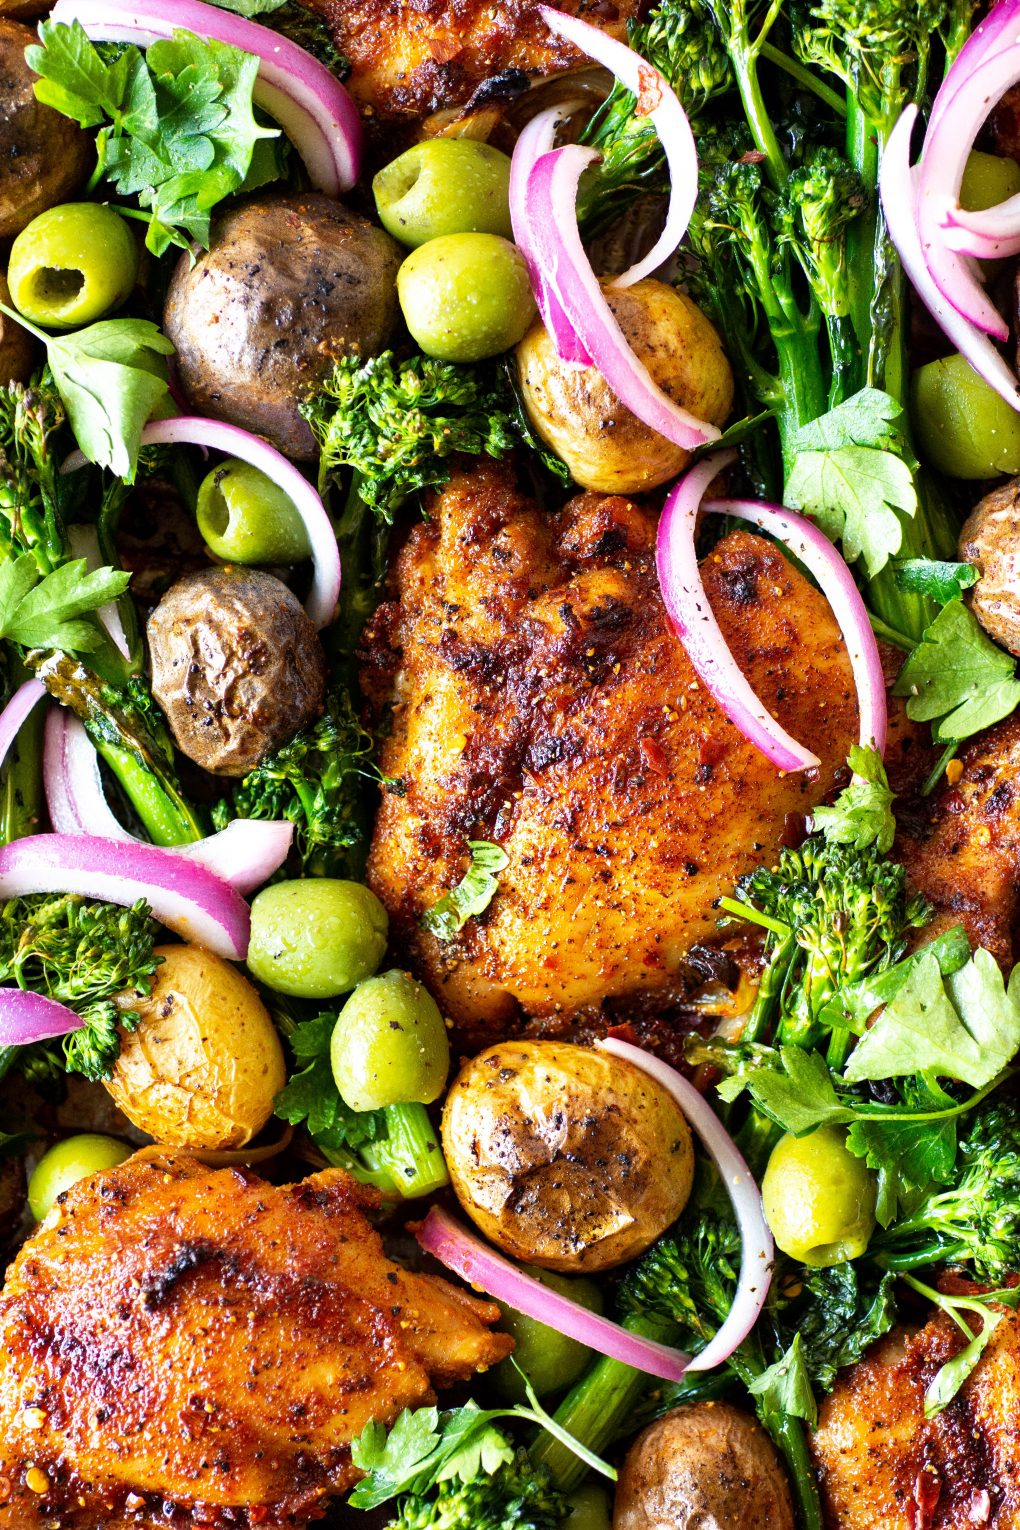 Overhead view of of a roasting tray with spiced chicken thighs, potatos, broccolini, olives, and pickled red onions